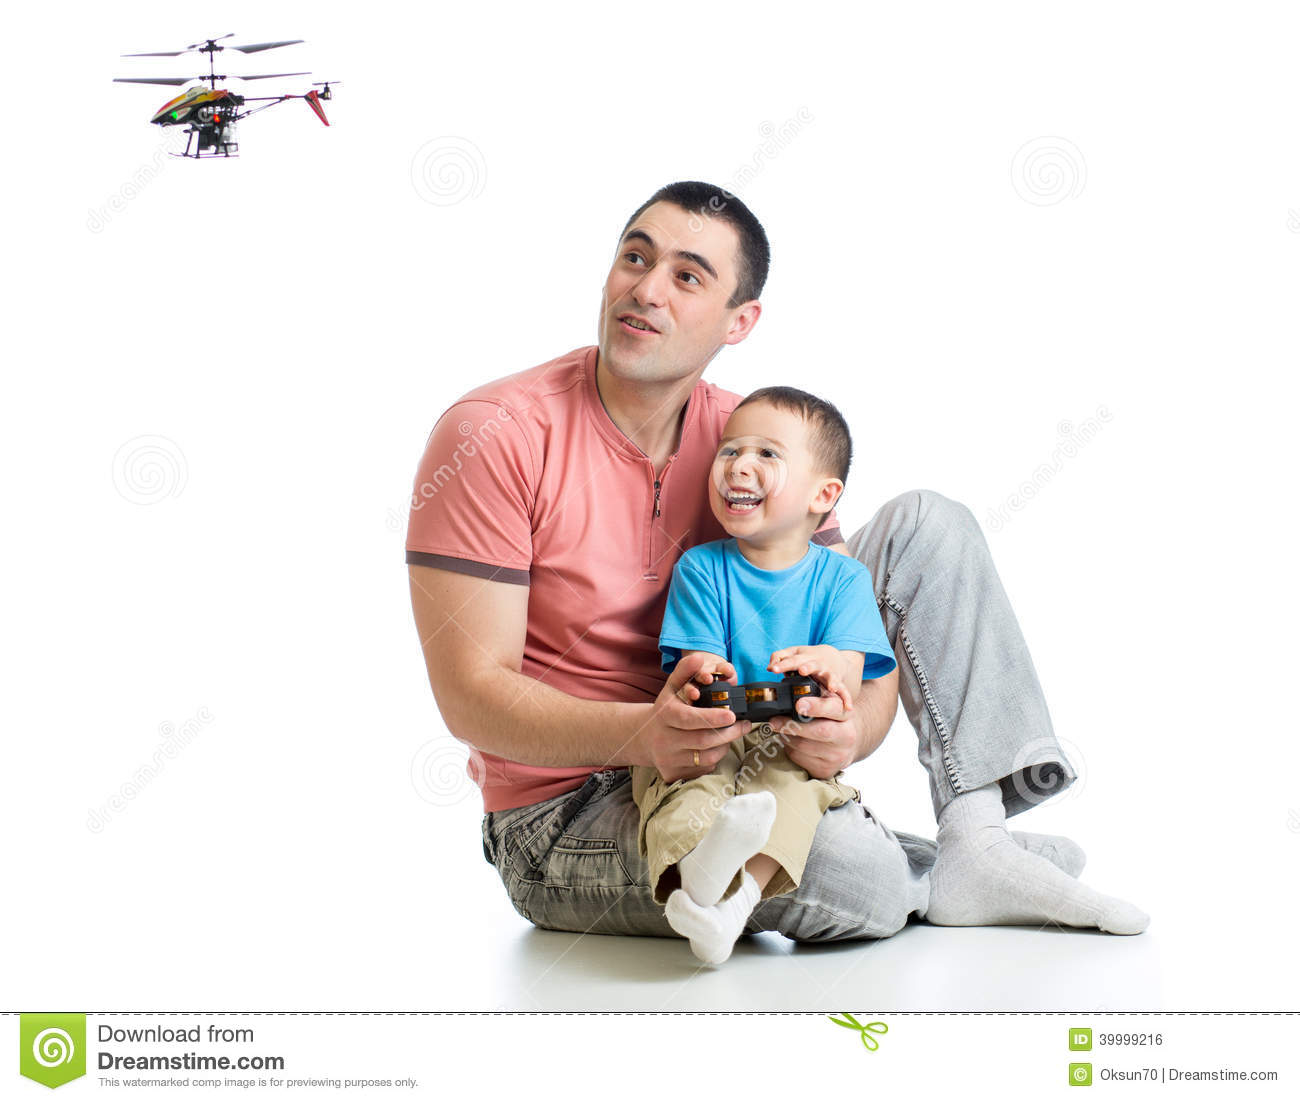 Toys For Dads : Can we stop the drone hysteria rebrn